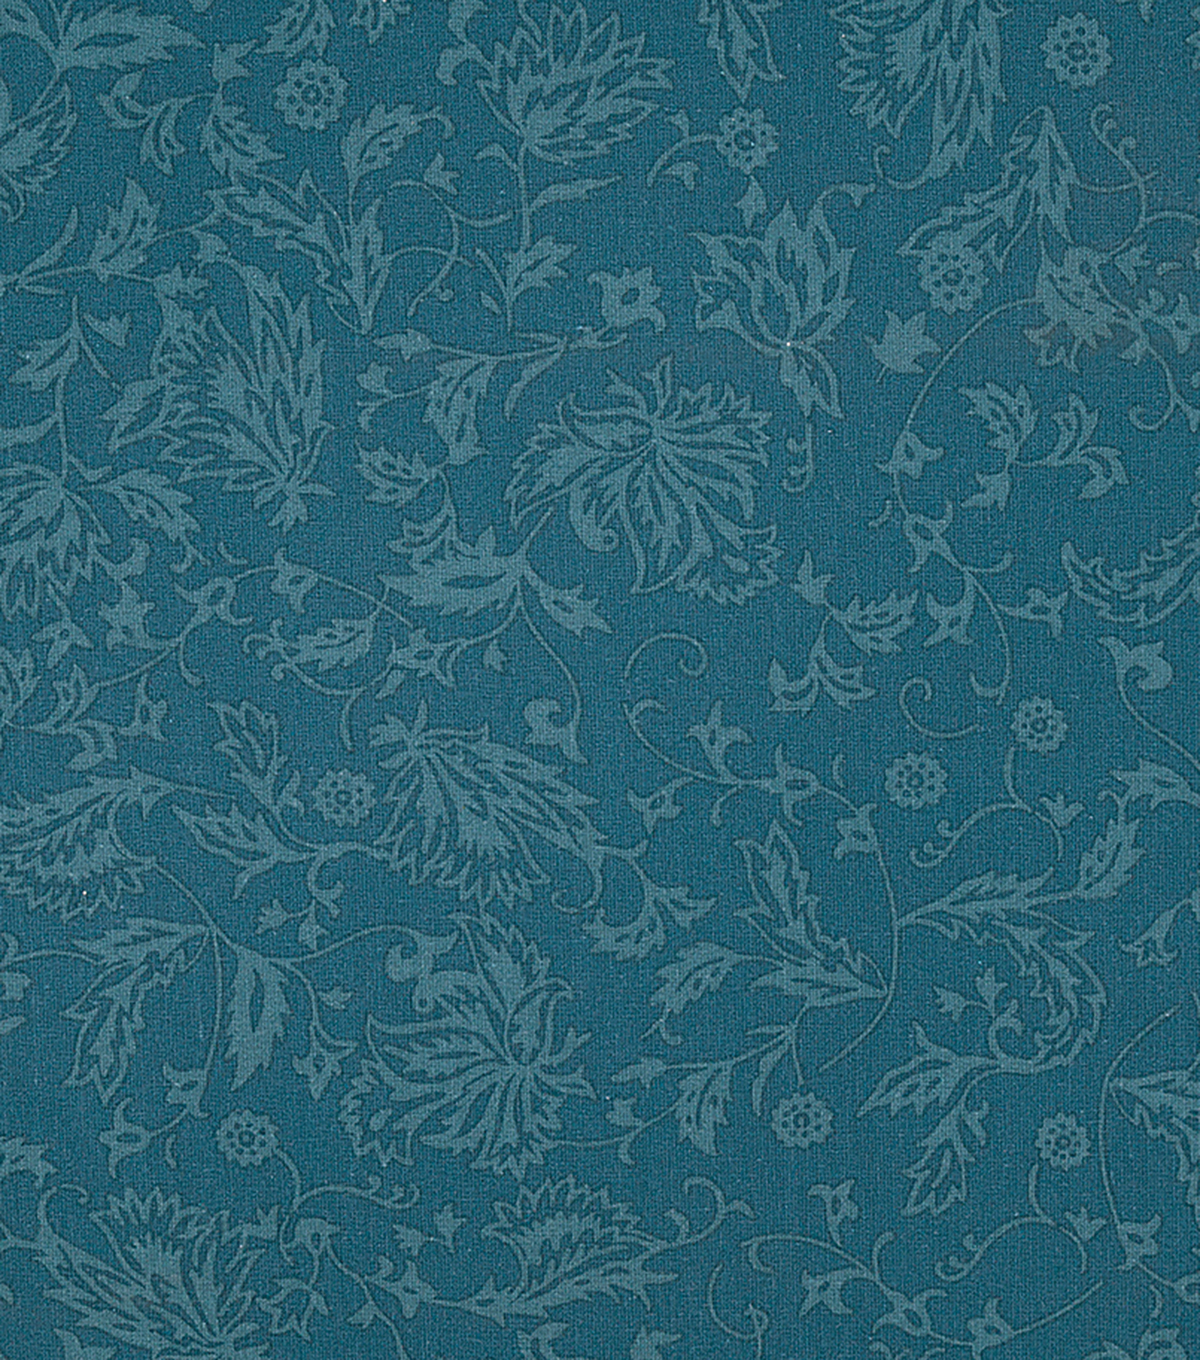 Keepsake Calico Cotton Fabric 108\u0027\u0027-Ocean Depths Floral